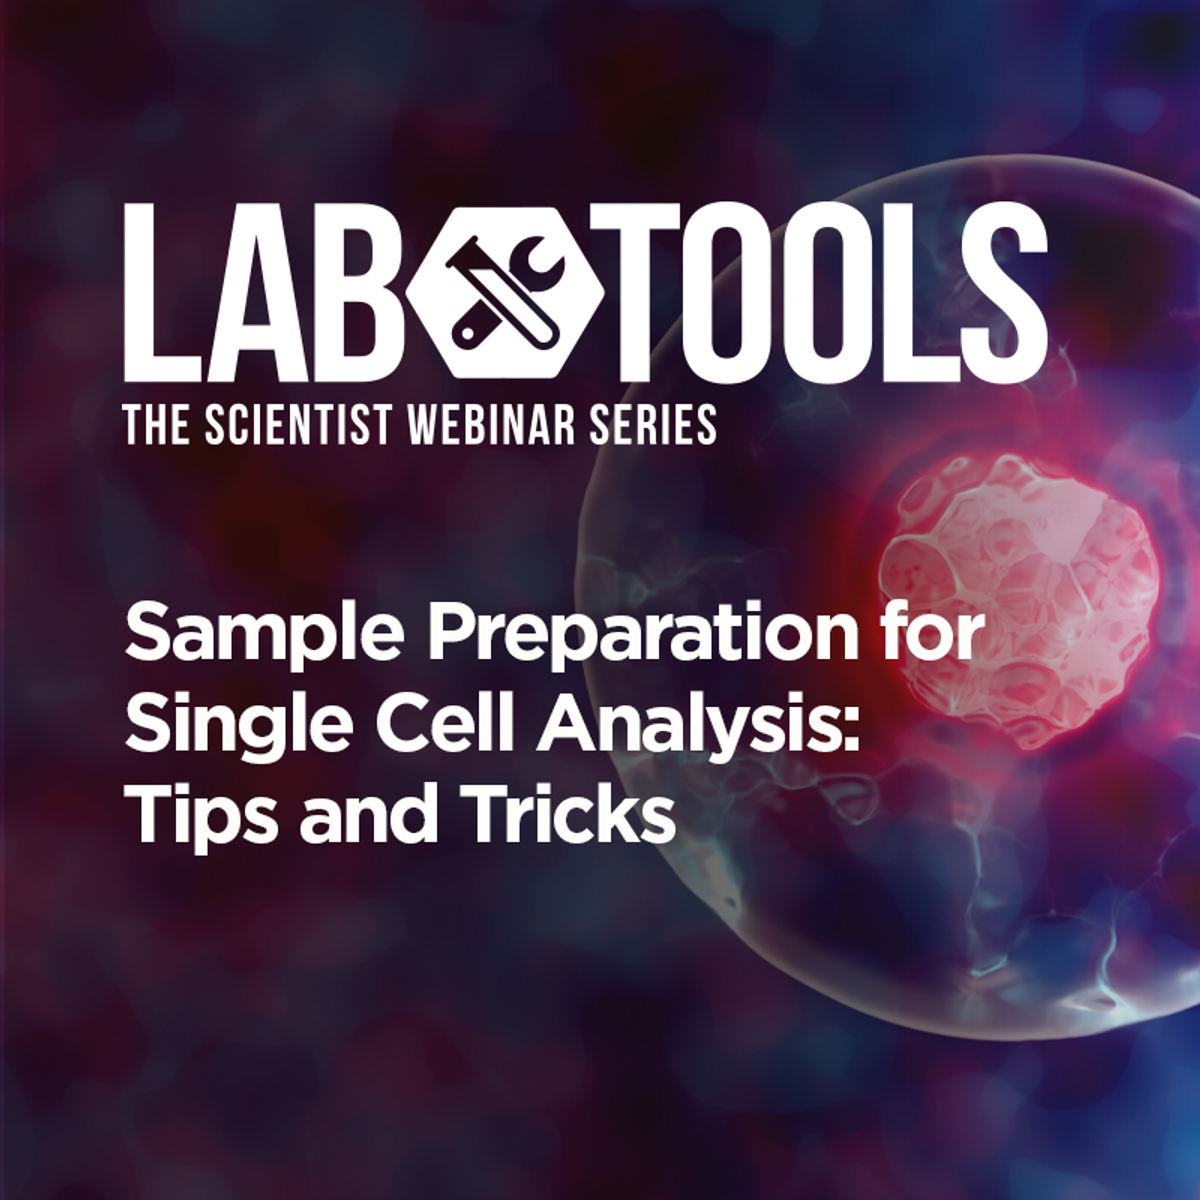 Sample Preparation for Single Cell Analysis: Tips and Tricks | The